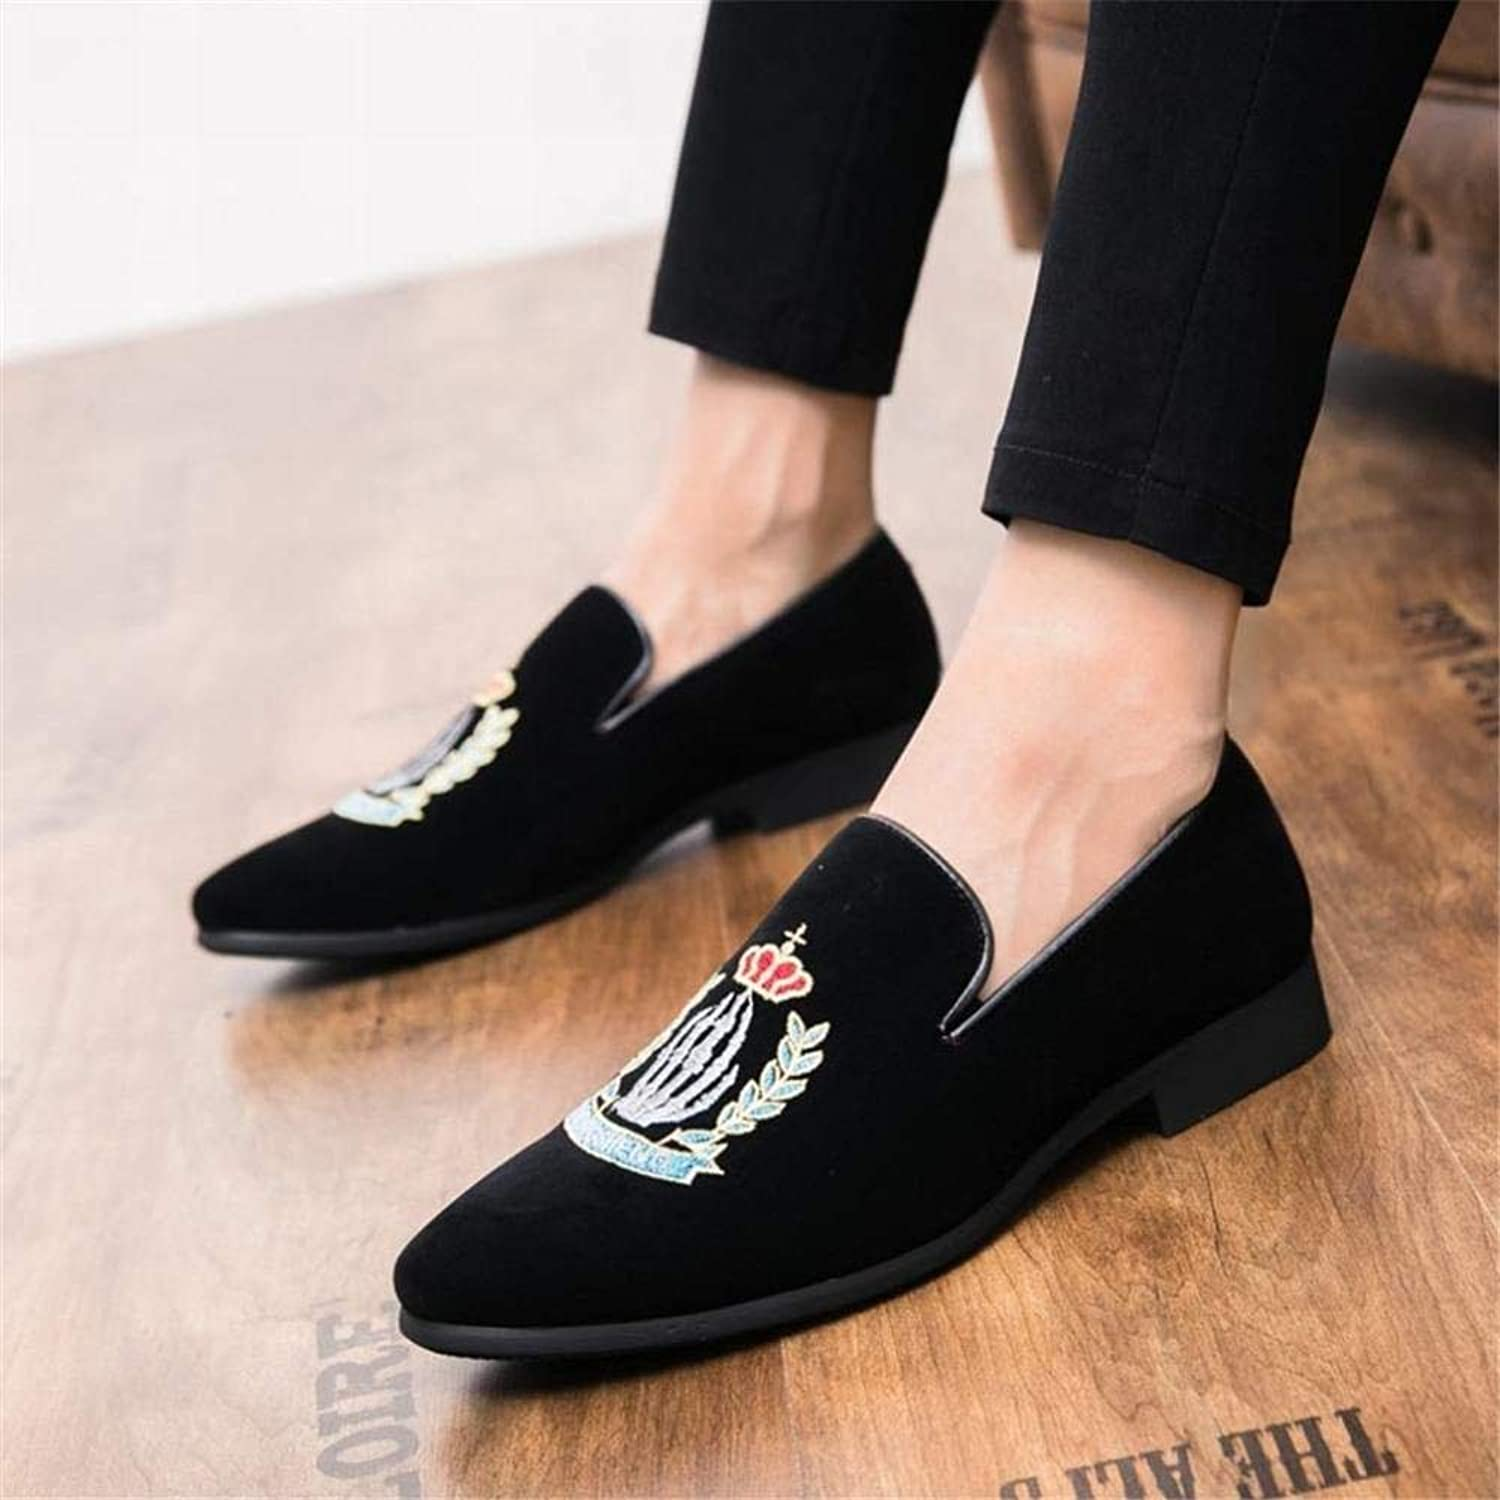 ZJ Men's shoes Loafers &Amp; Slip-Ons Driving shoes Platform shoes Hair Stylist Nightclub,Personality For Wedding Party &Amp; Evening Night Club Stage Comfortable